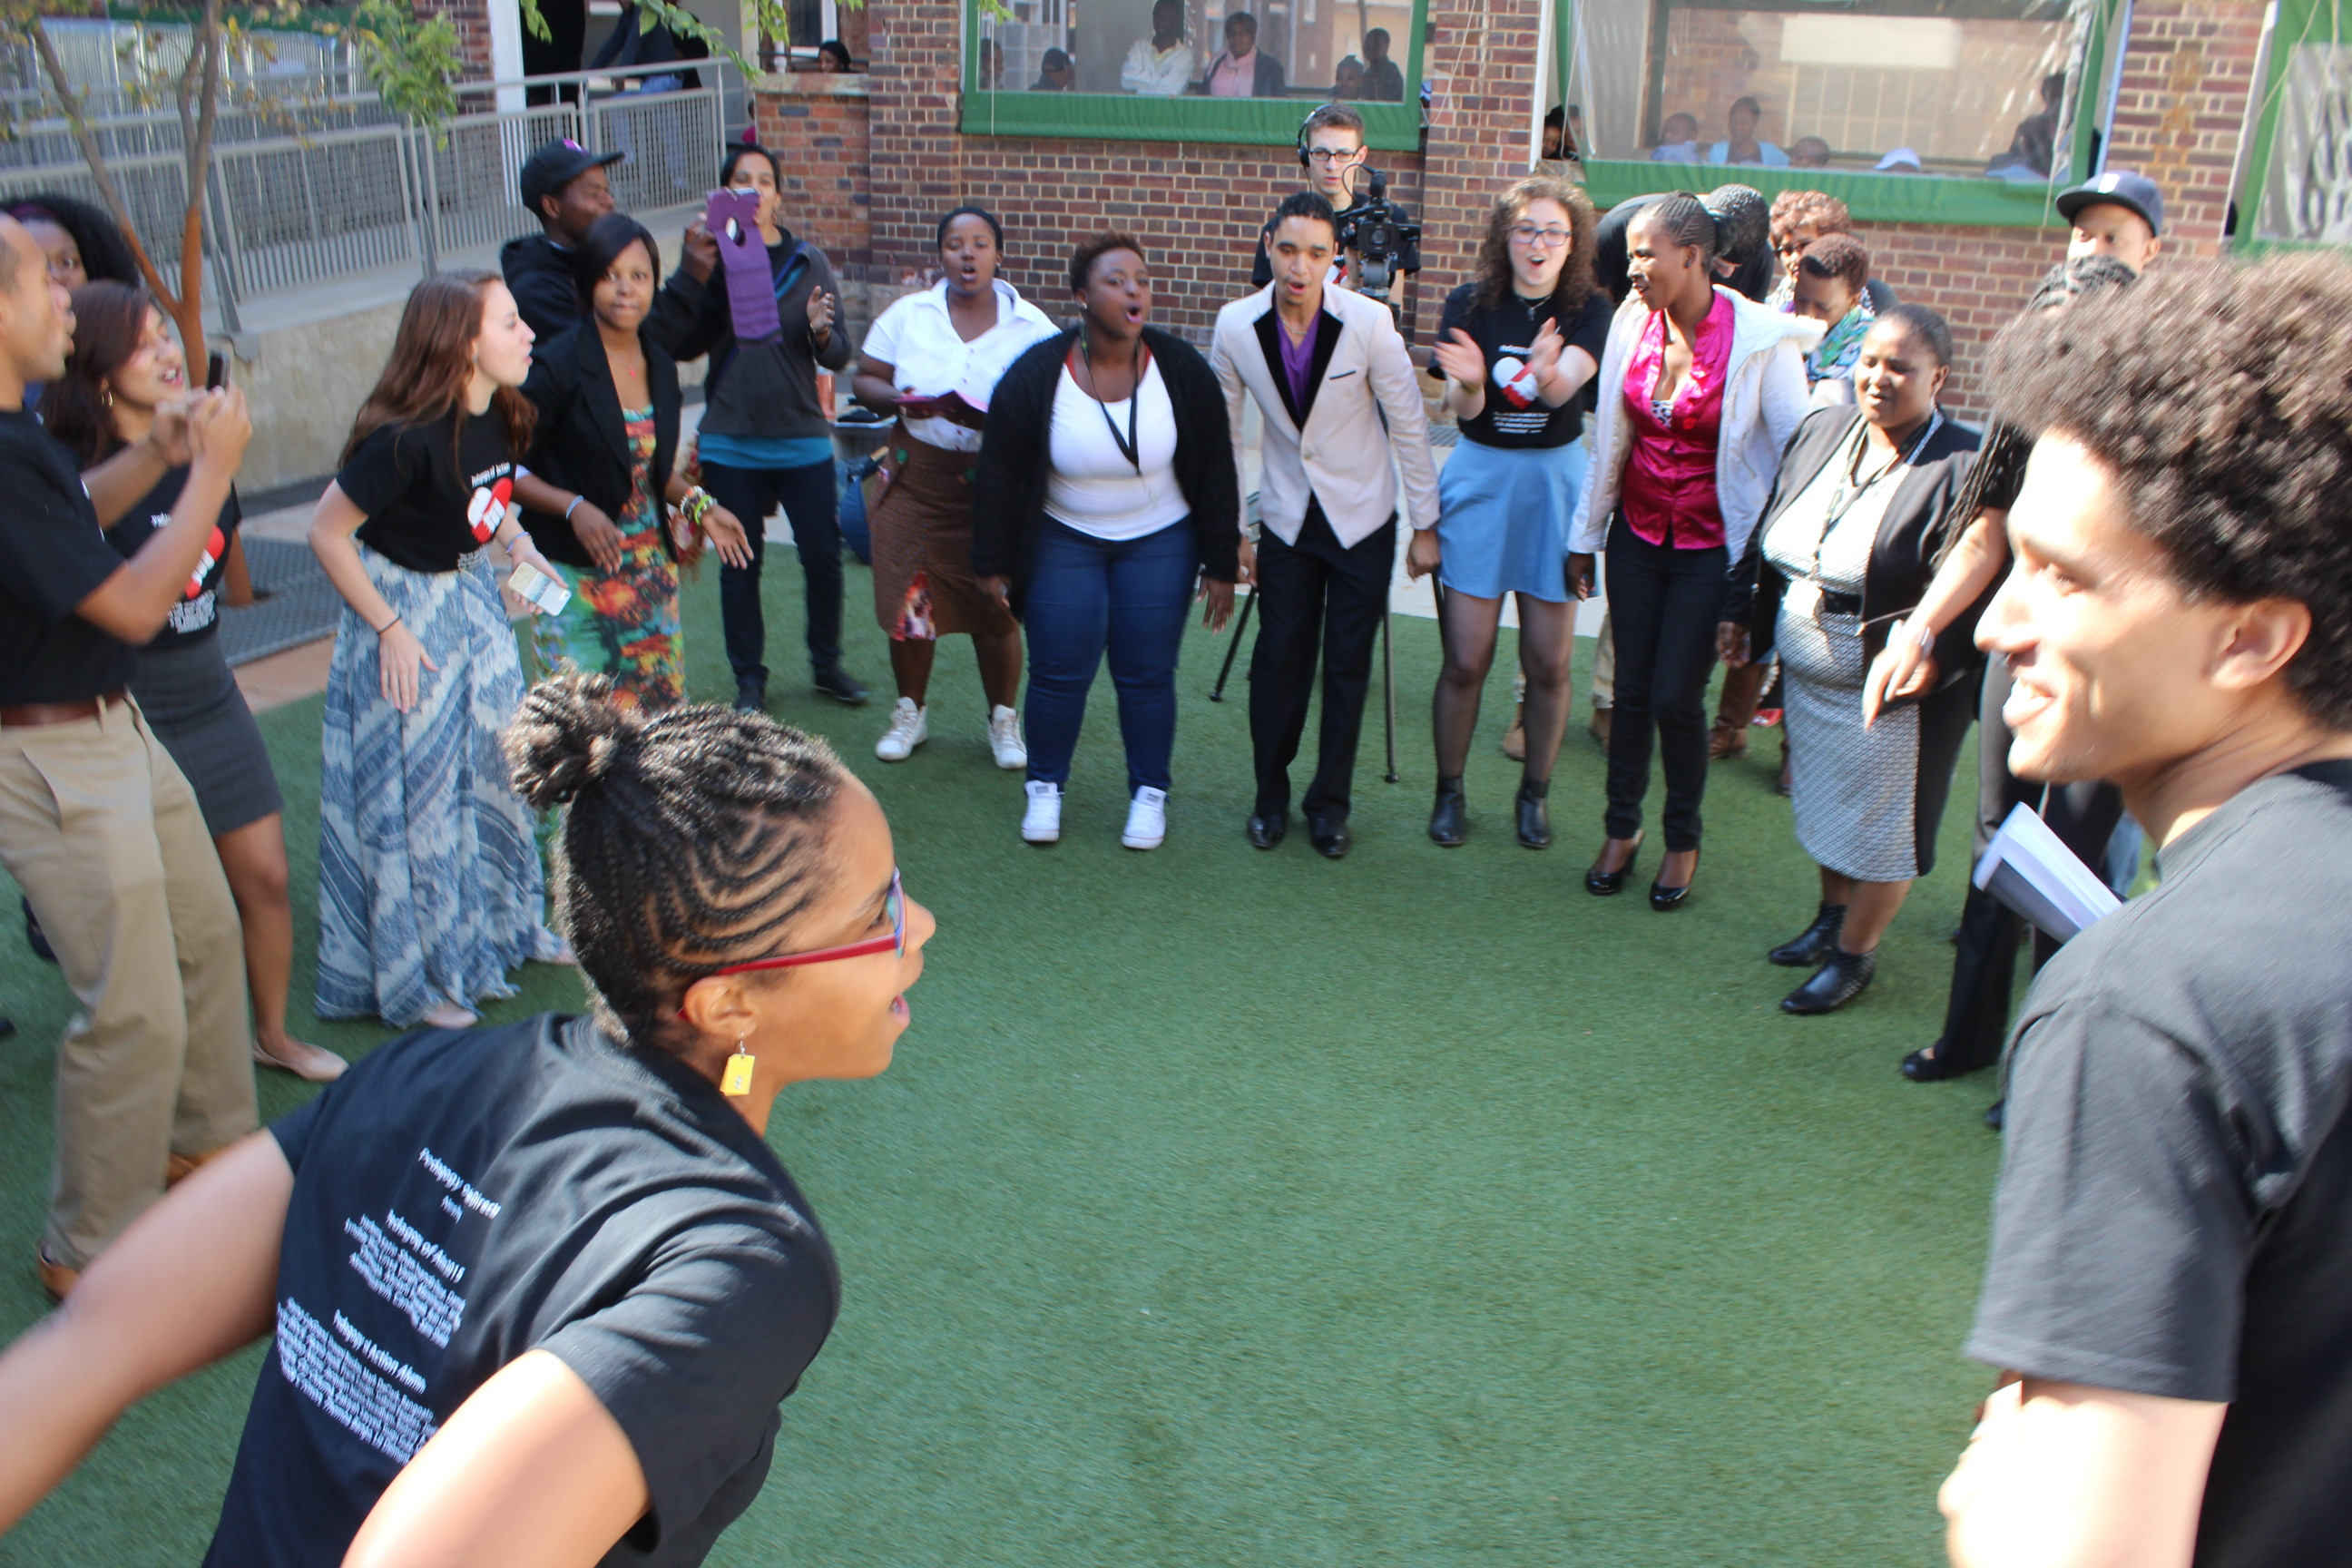 loveLife Groundbreakers and POA students dancing together at graduation ceremony